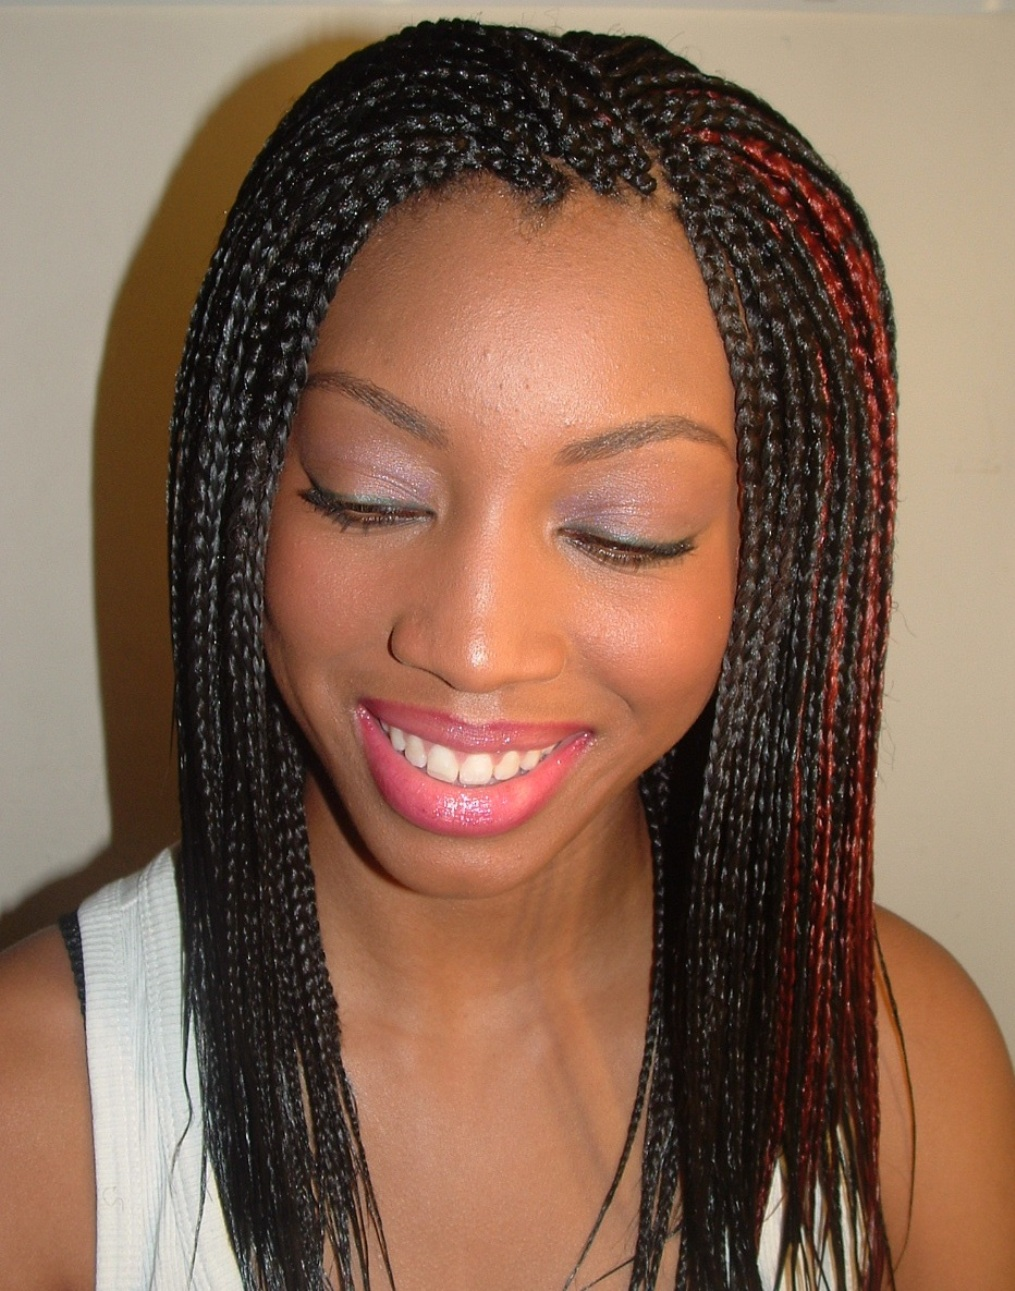 professional hair braiding training  Hairbraidingacademy